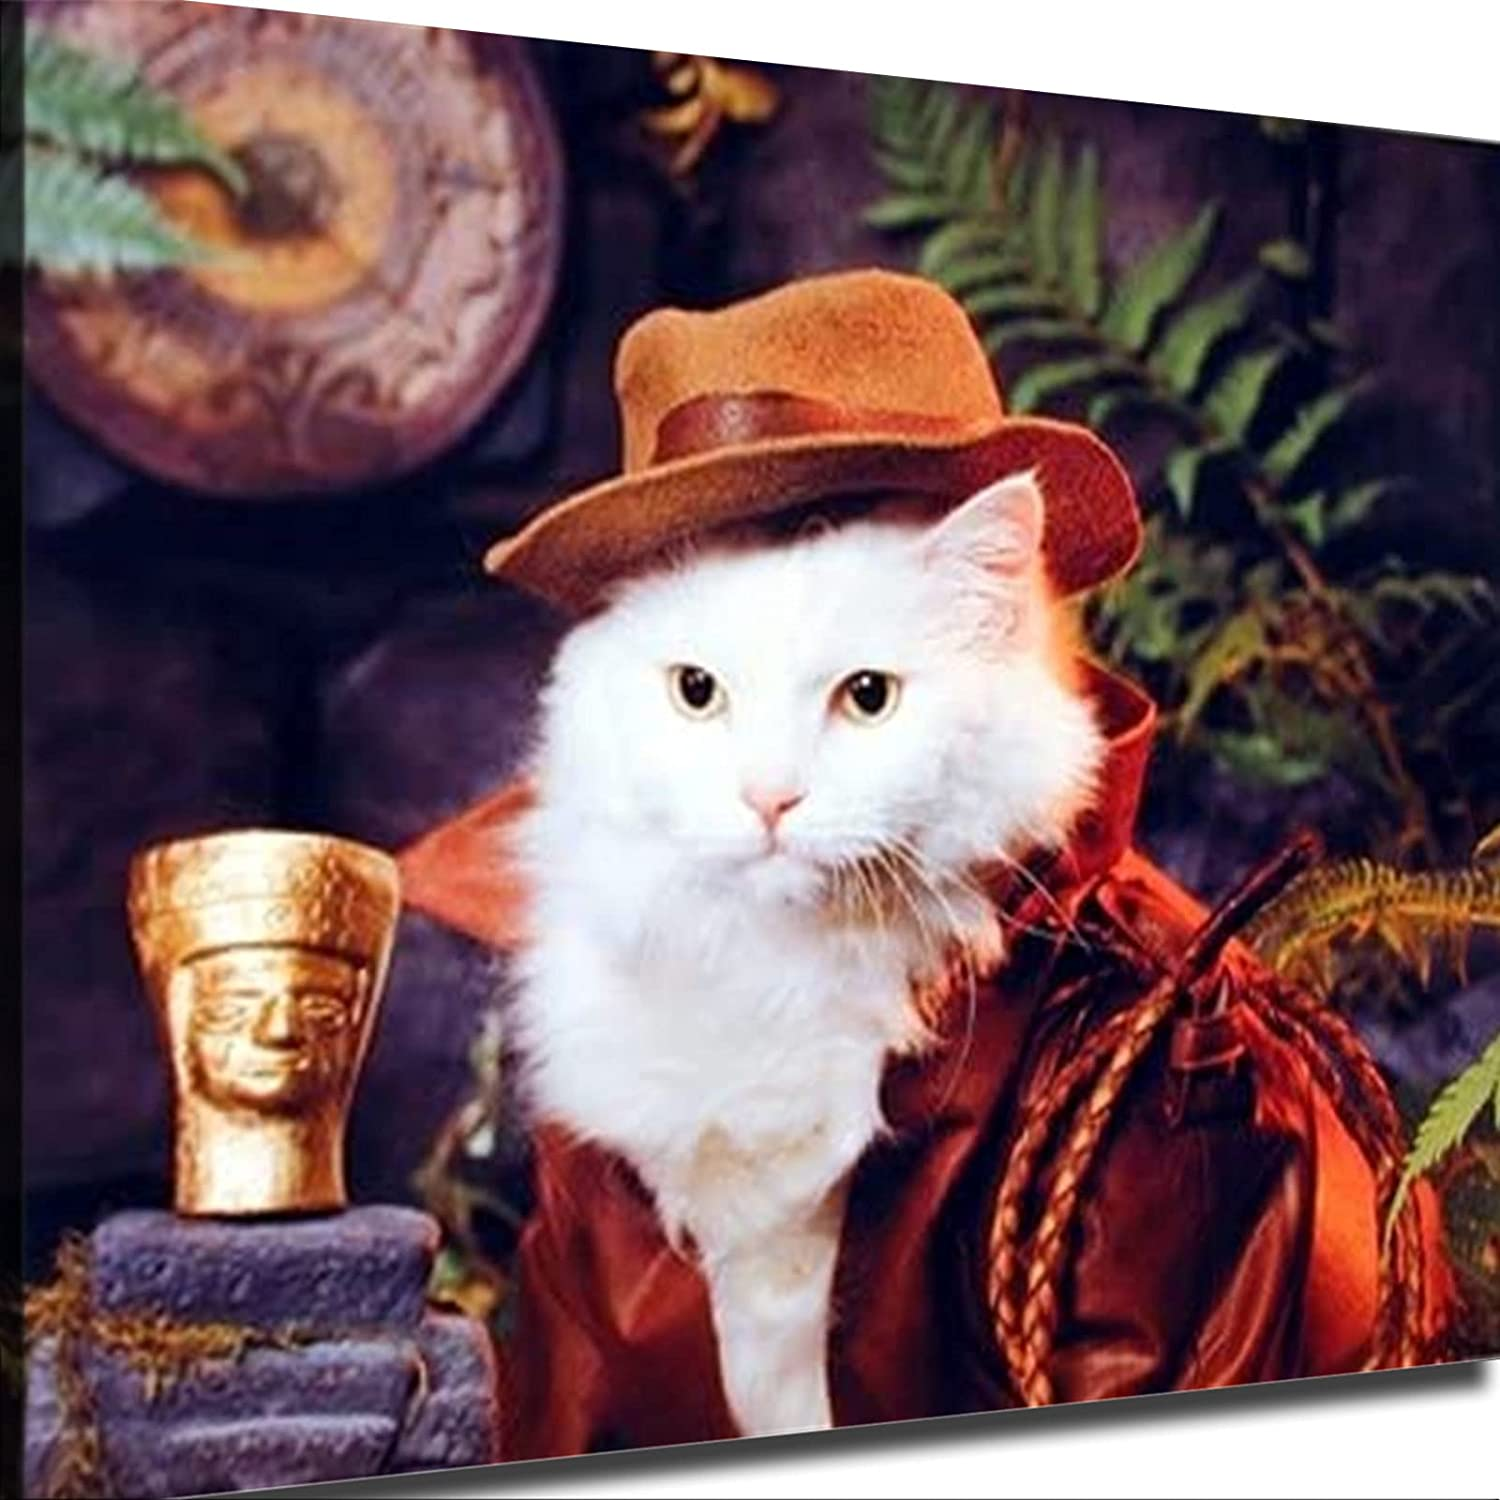 Indiana Jones Cat Funny Animal Nature Kids Room Poster Picture Art Print Canvas Wall Art Home Living Room Bedroom Decor Mural (12×12inch-Framed)